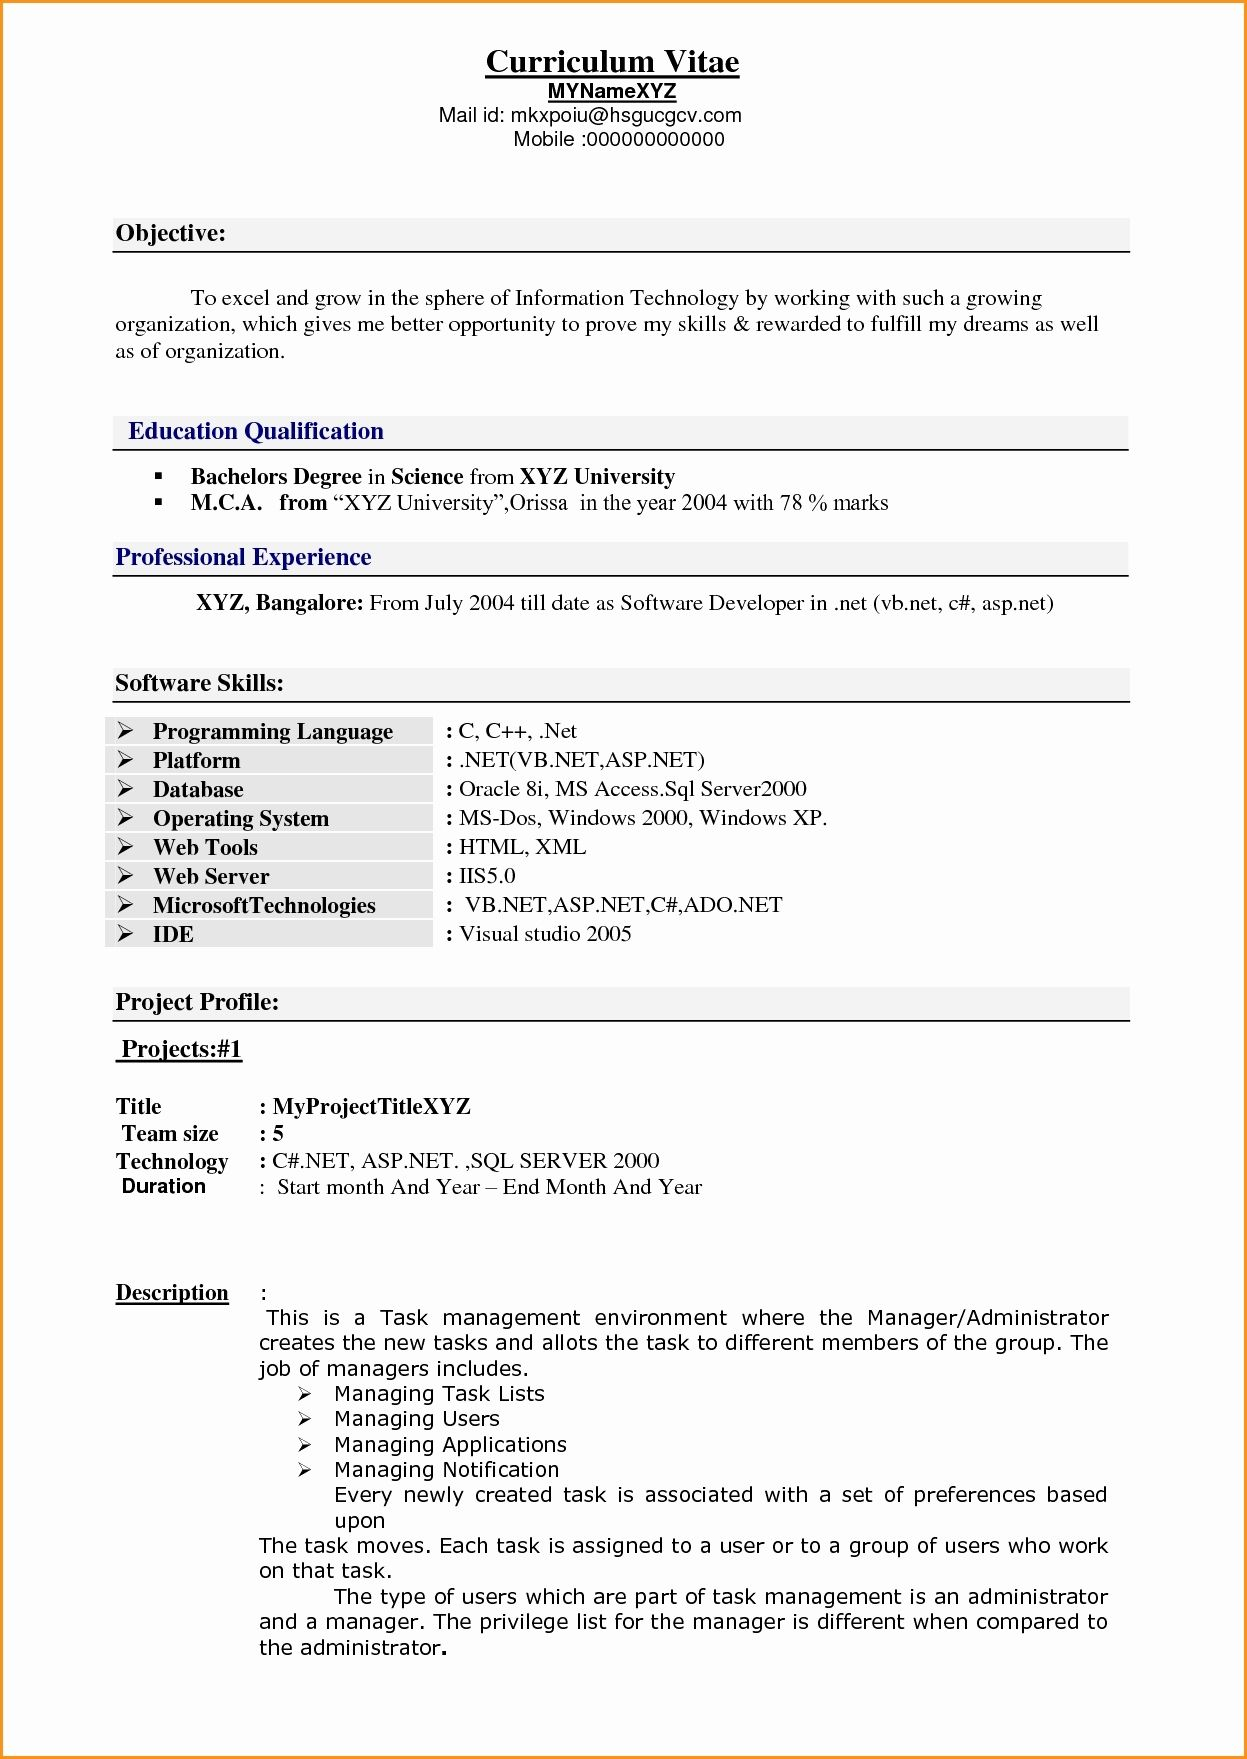 Resume Format 5 Years Experience Resume format, Resume